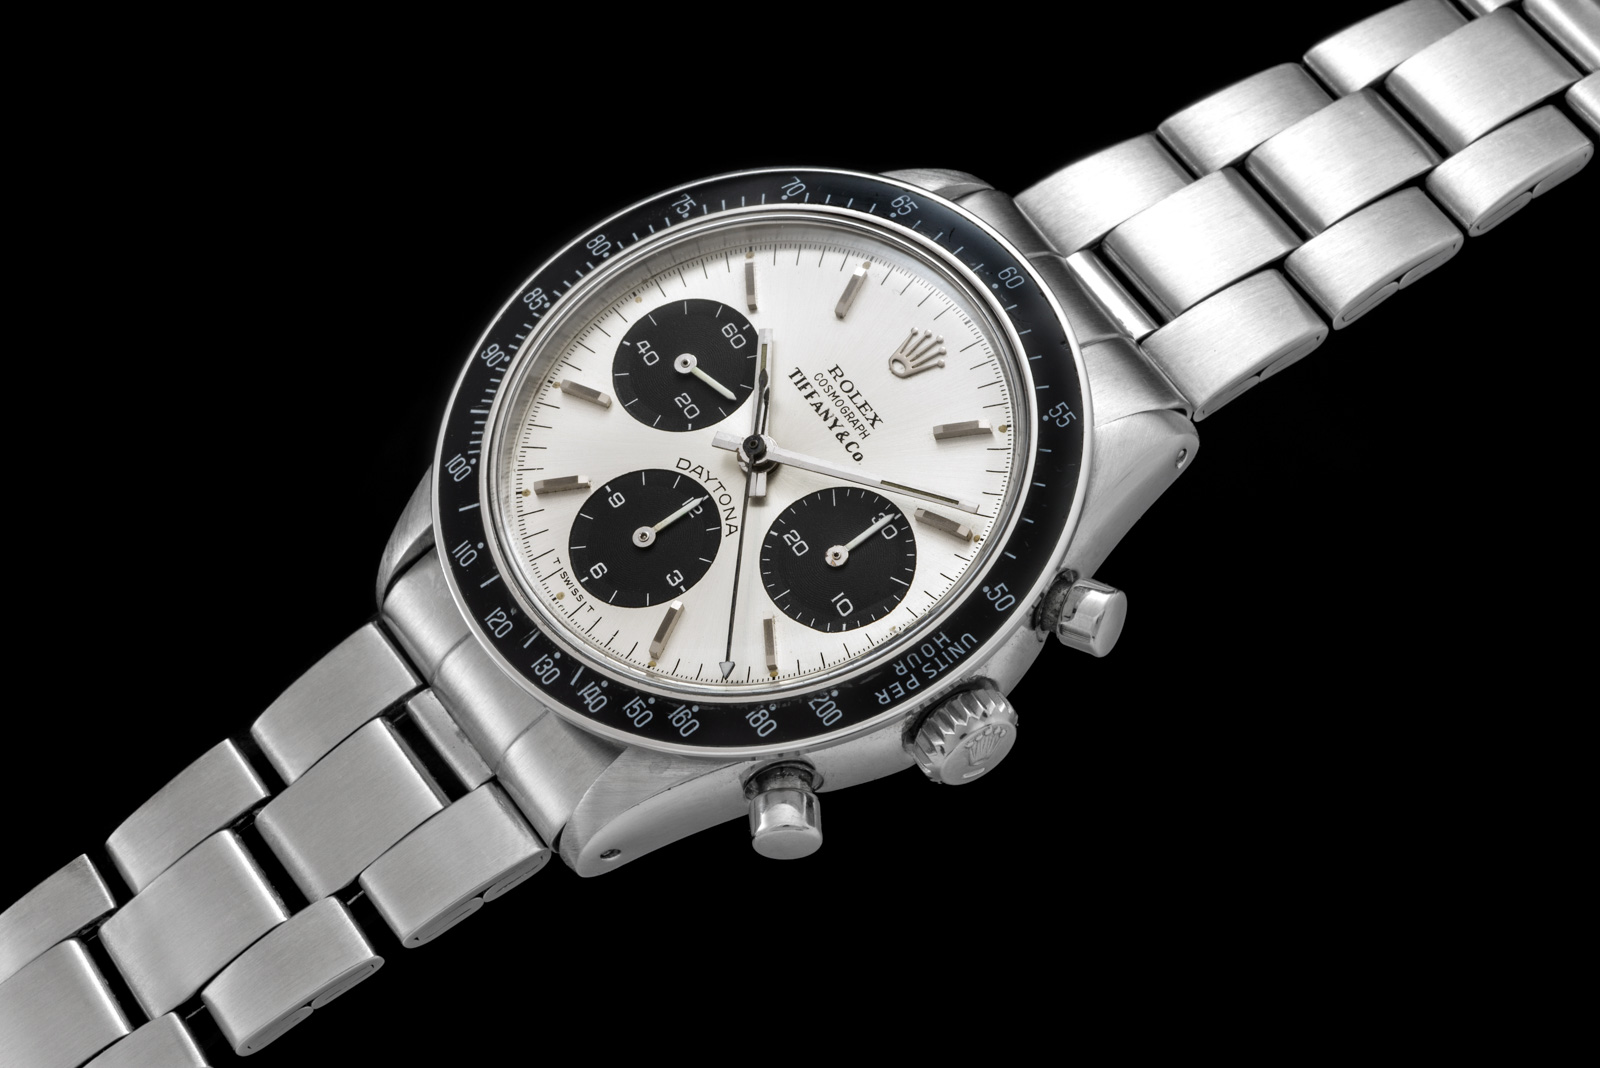 Rolex The steel Daytona ref. 6241 retailed by Tiffany 1